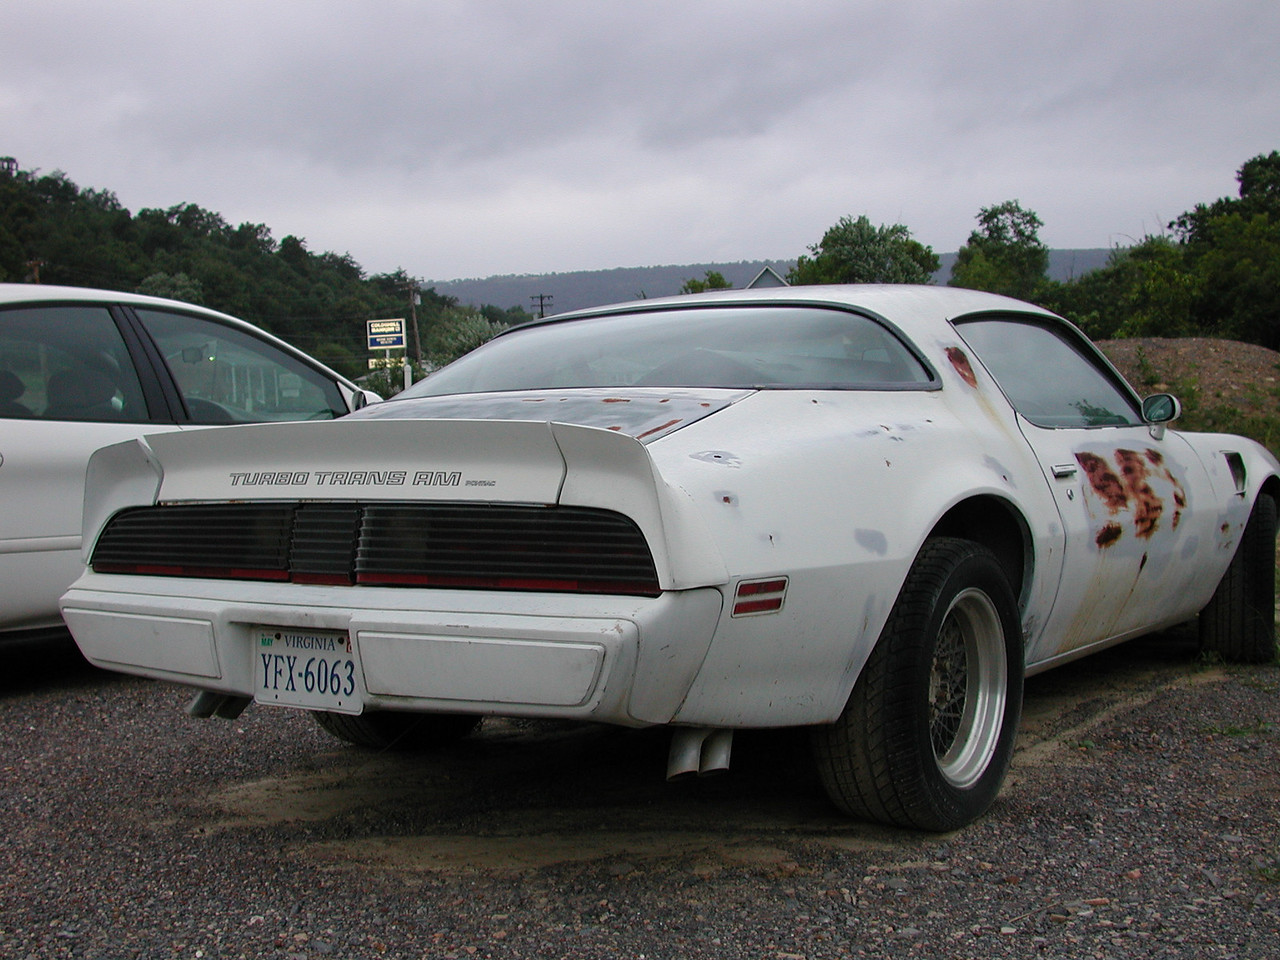 Romney WVA, is within 35 miles (or less) of the Virginia State Line. This Trans Am Pace car shows a Virginia licsense plate.